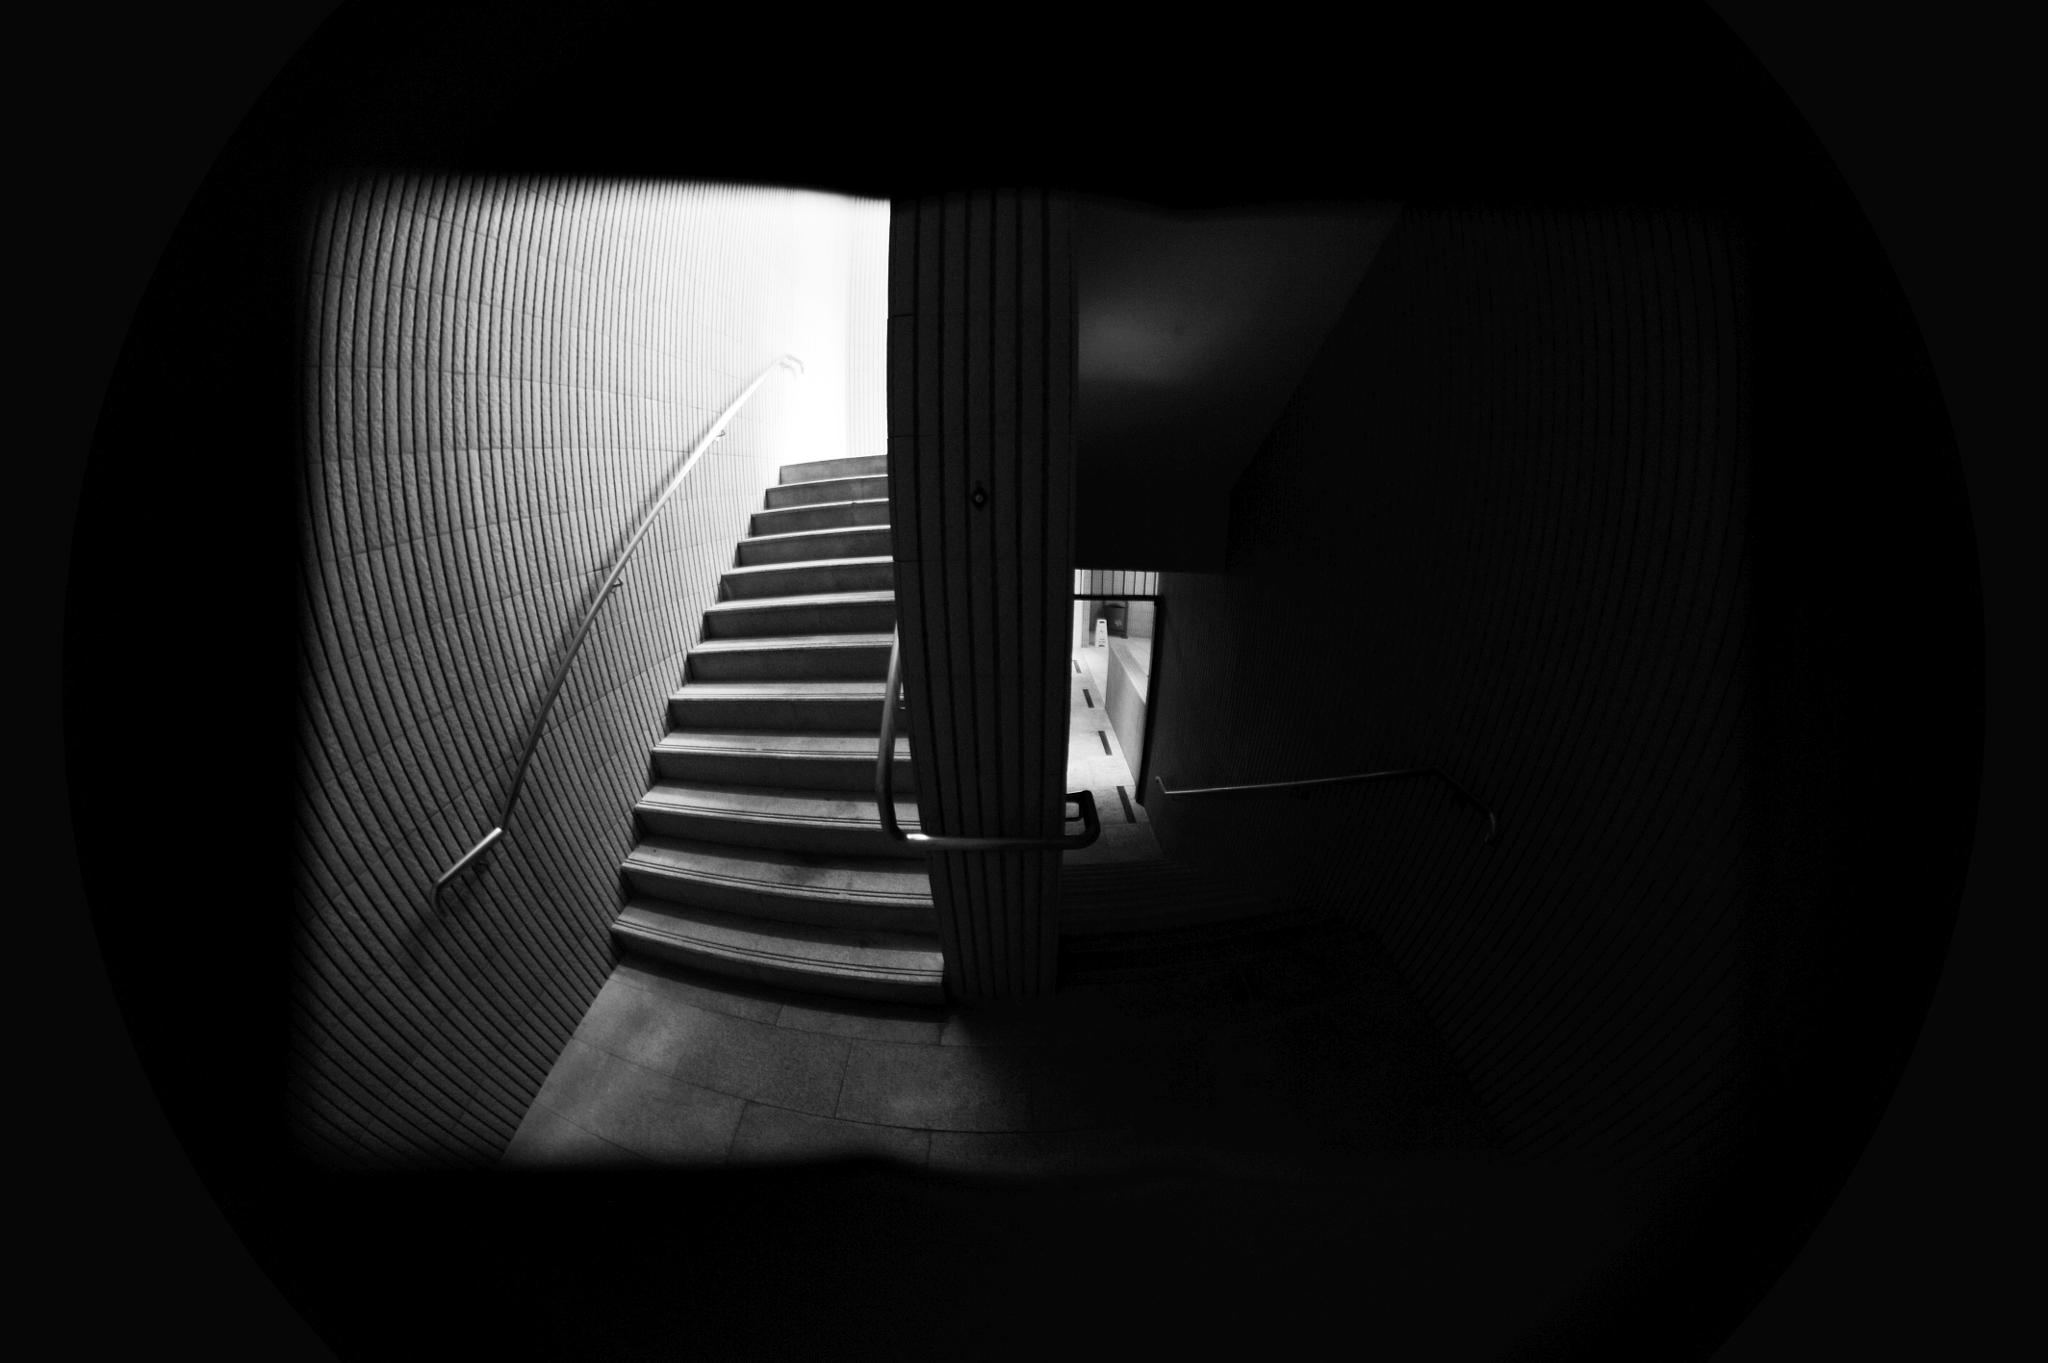 ...stairs... by cyccanhk